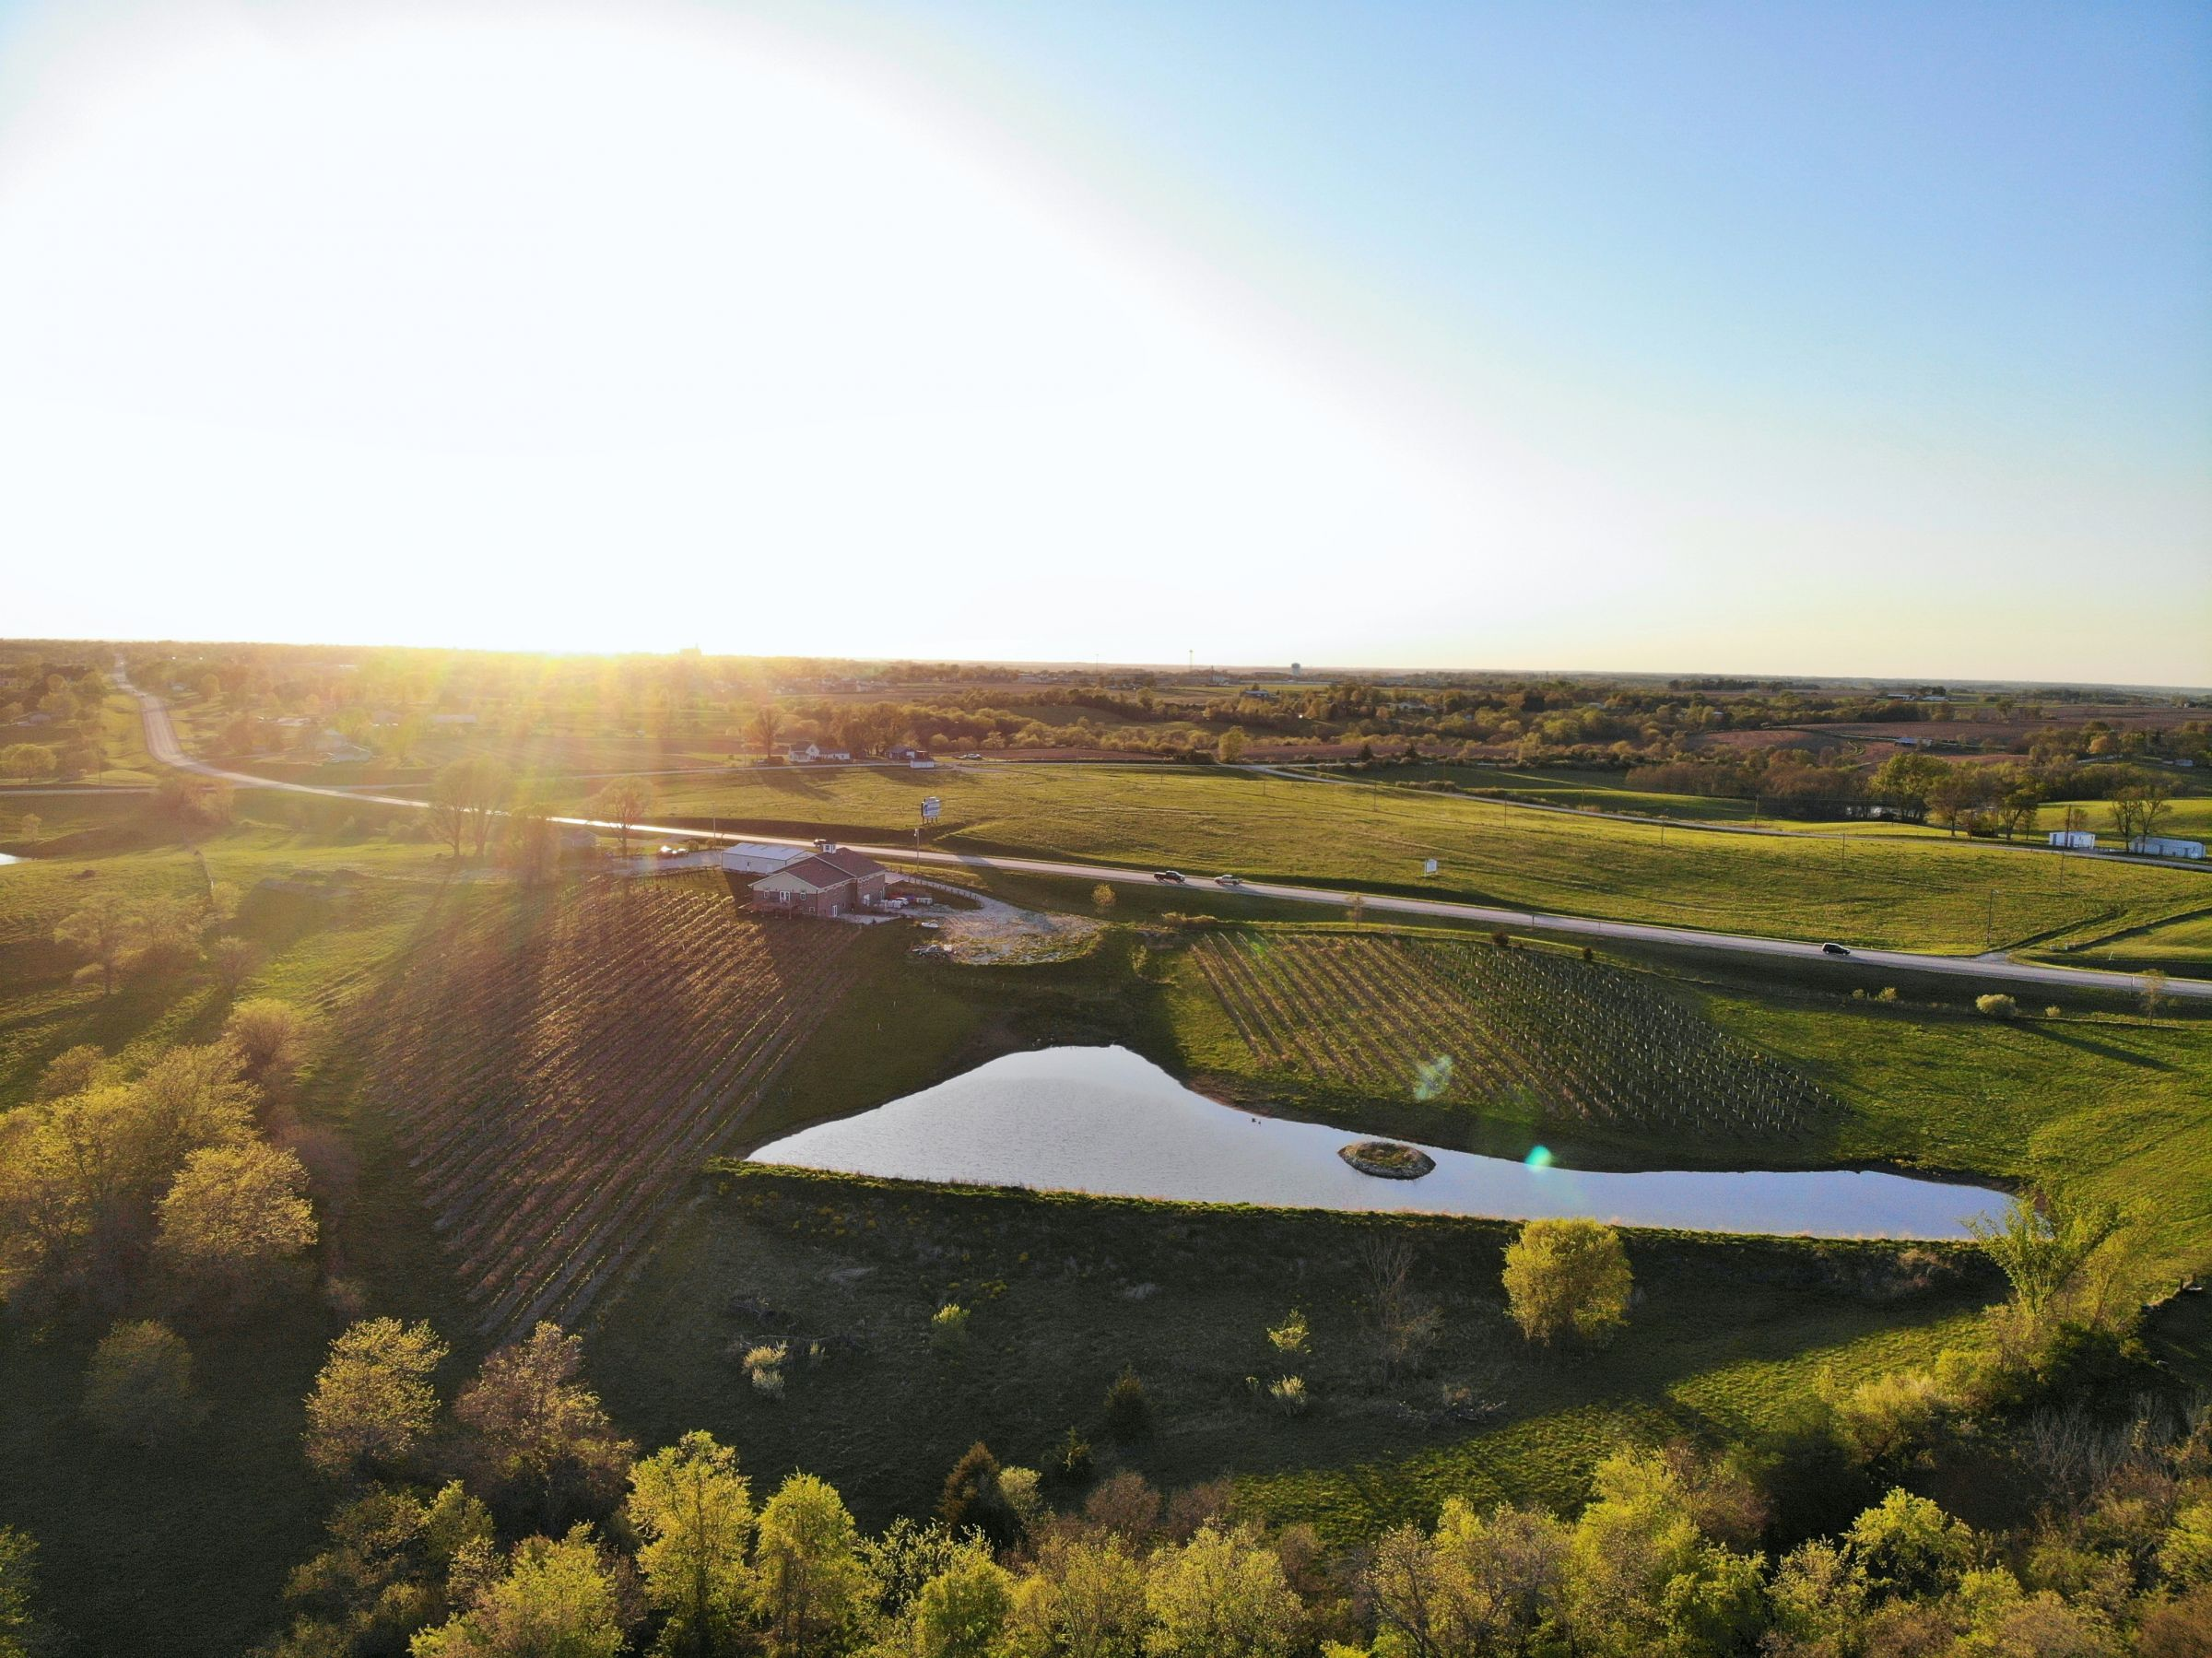 residential-land-commercial-warren-county-iowa-16-acres-listing-number-15510-1-2021-05-05-032836.jpg